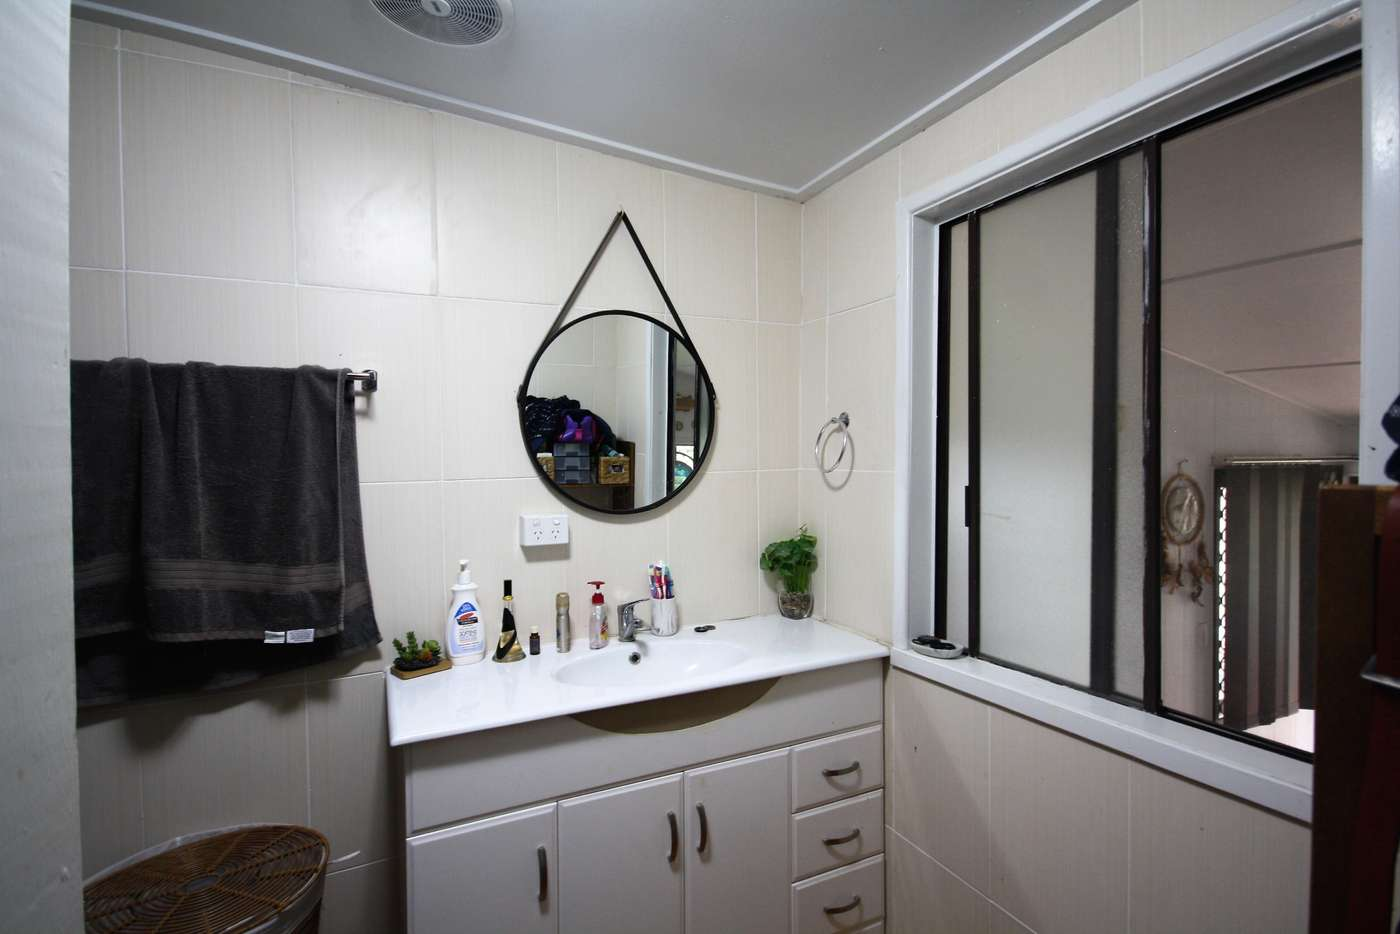 Seventh view of Homely house listing, 8 Sturt St, Warwick QLD 4370